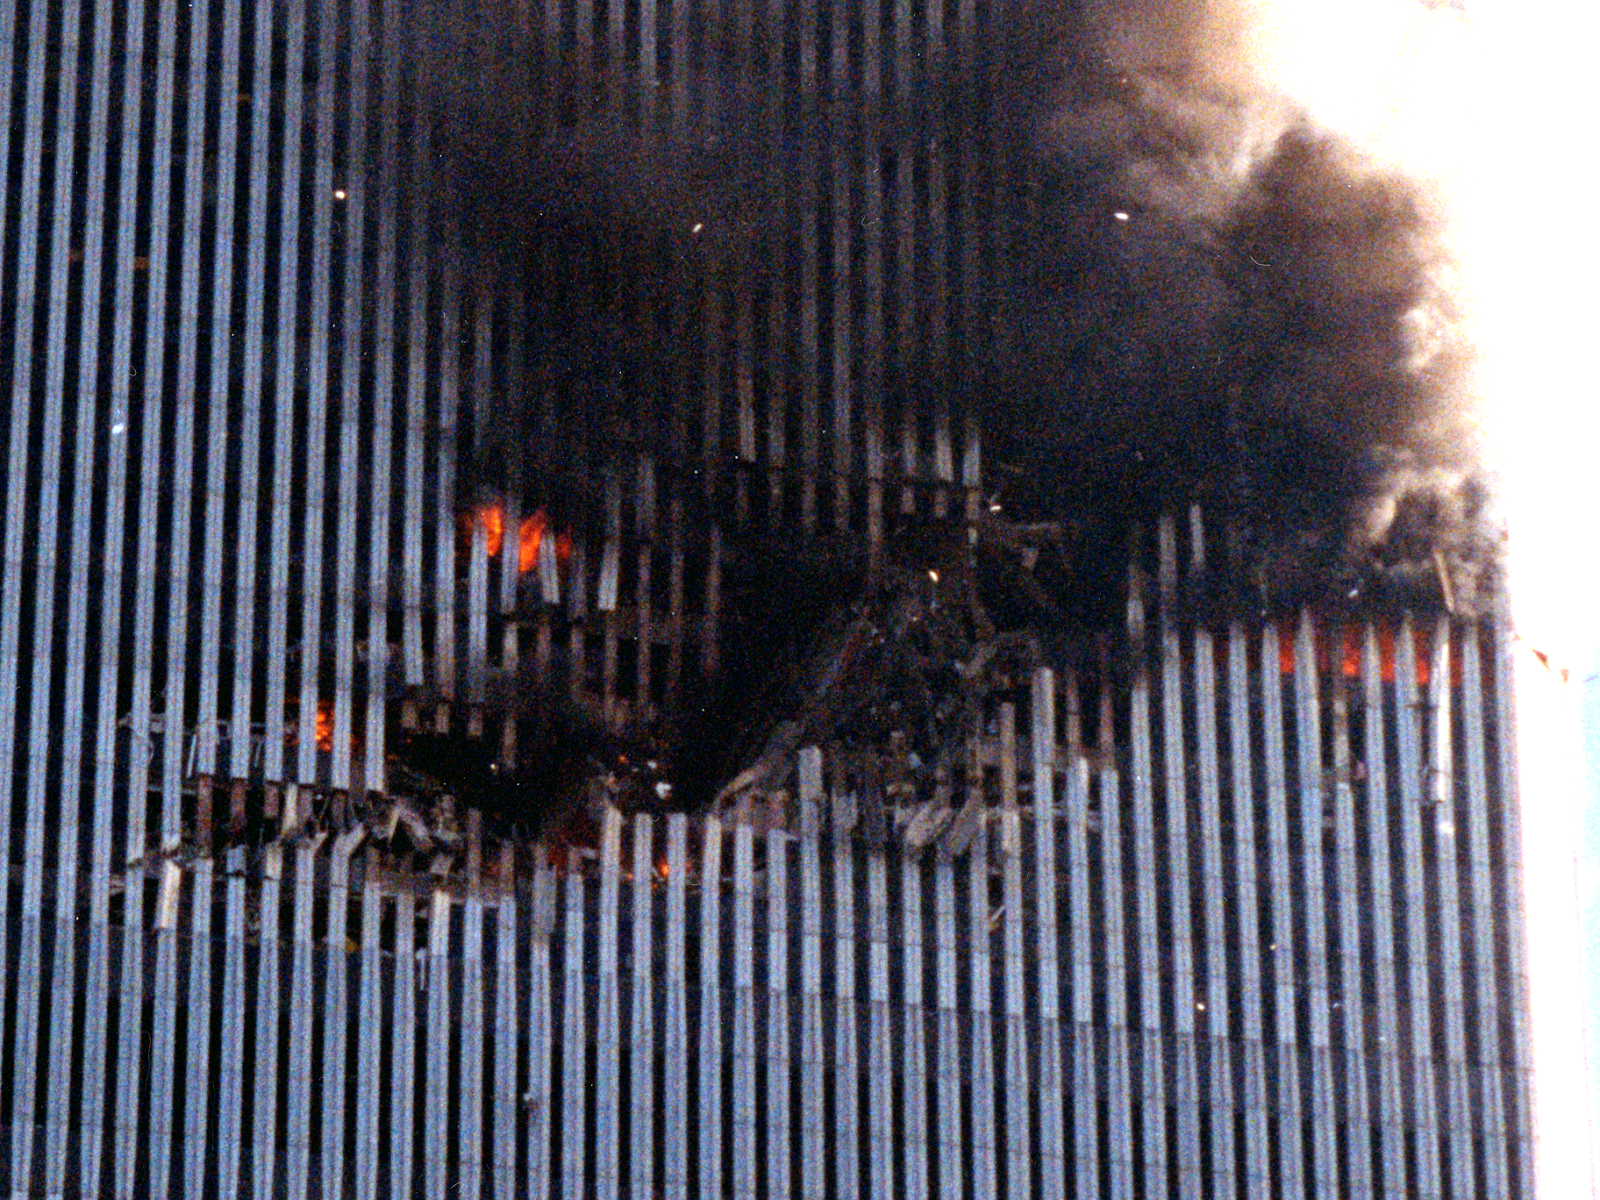 WTC2 Airplane Hole